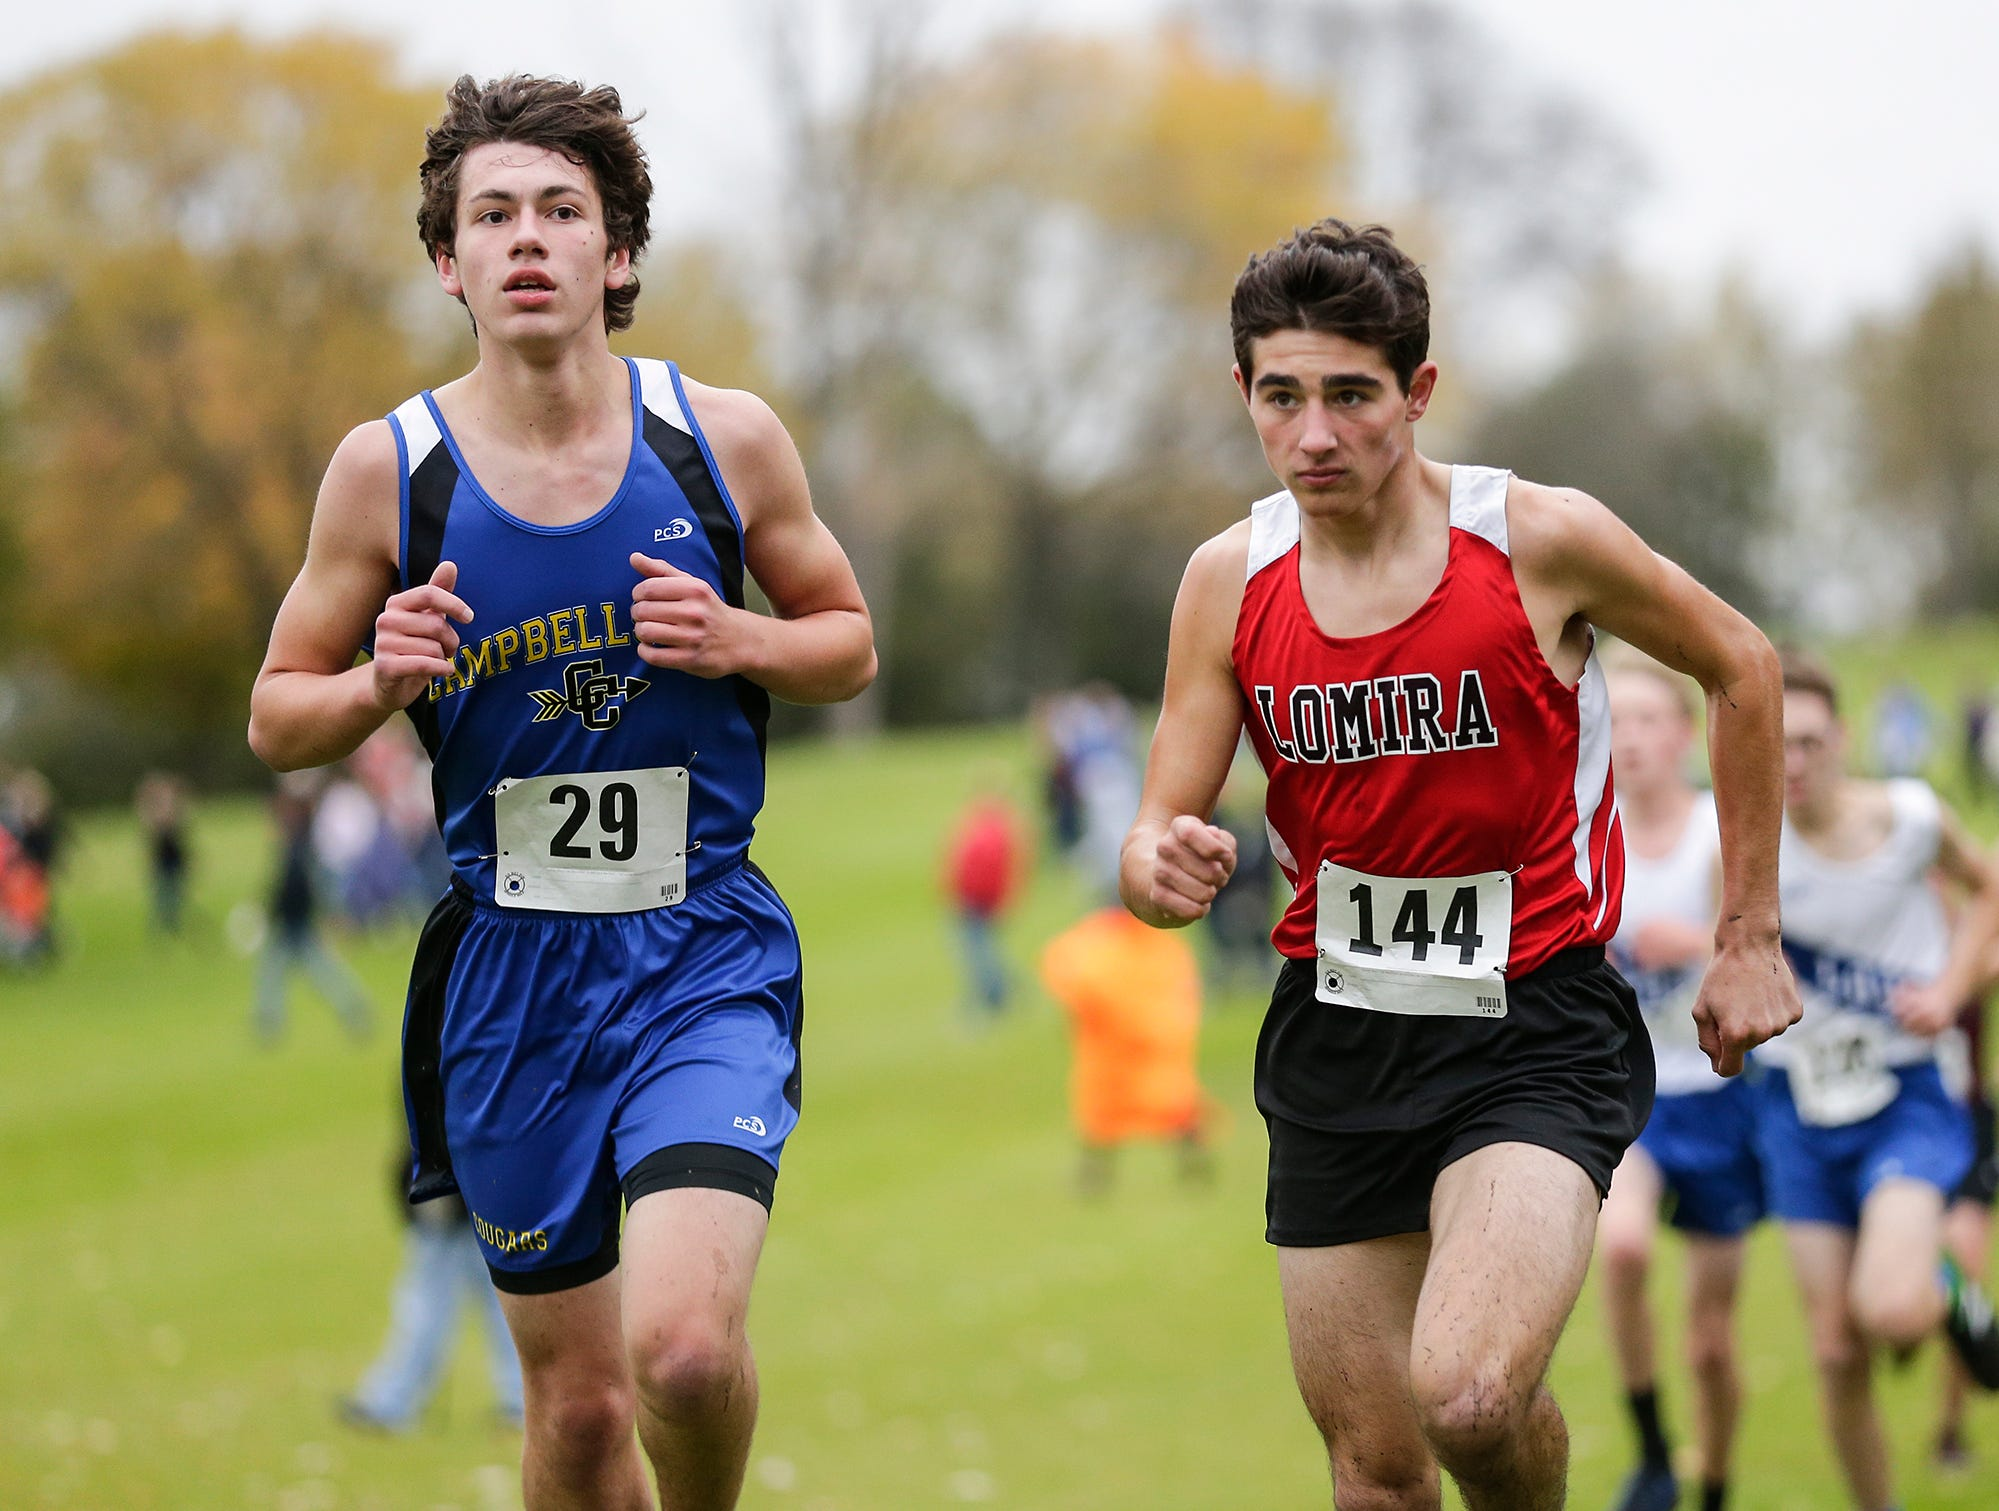 Campbellsport High School's Jared Engel and Lomira High School's Alex Gundrum run in the WIAA Division two Mayville sectional cross country meet at the Mayville golf course Friday, October 19, 2018. Doug Raflik/USA TODAY NETWORK-Wisconsin